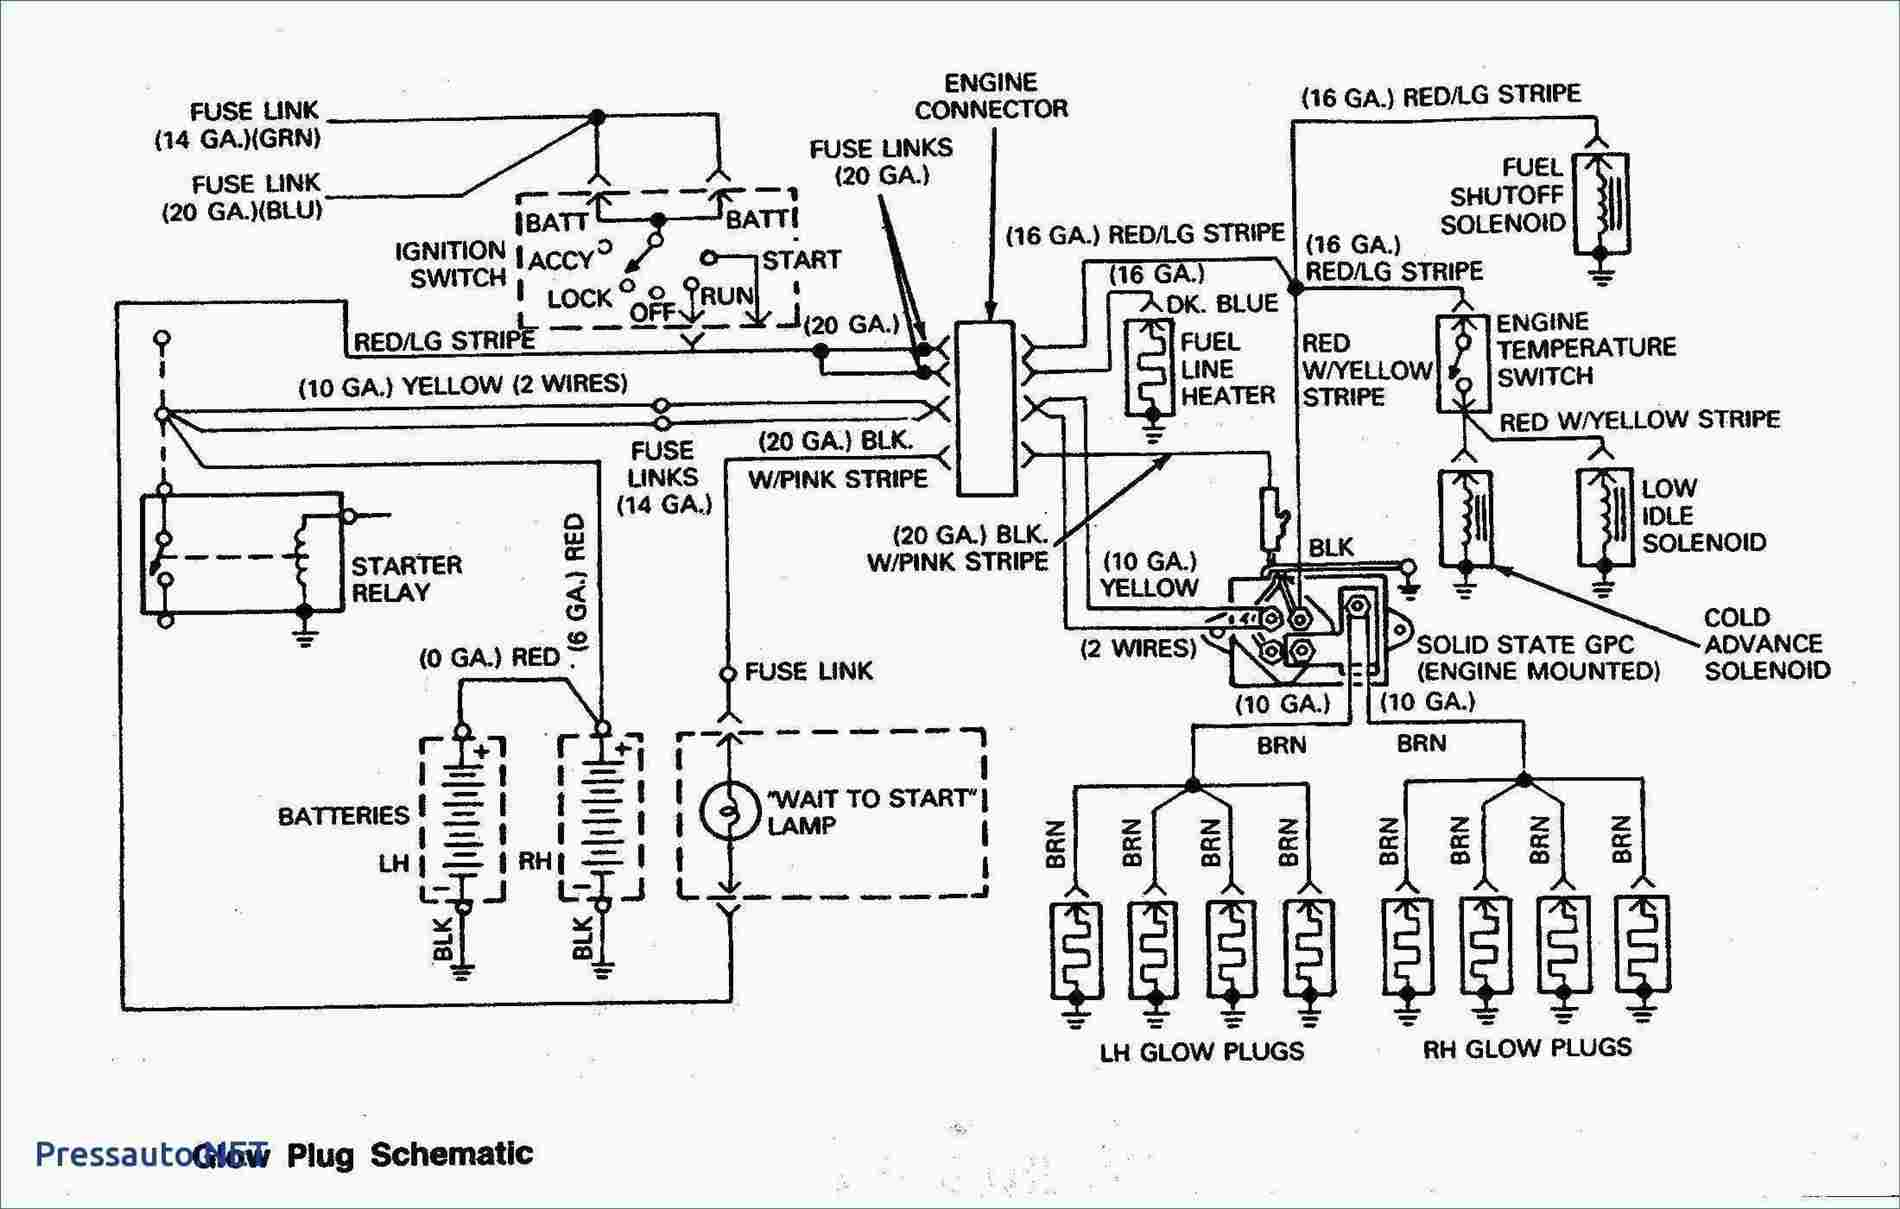 2003 Duramax Ecm Wire Diagram Wiring Diagram